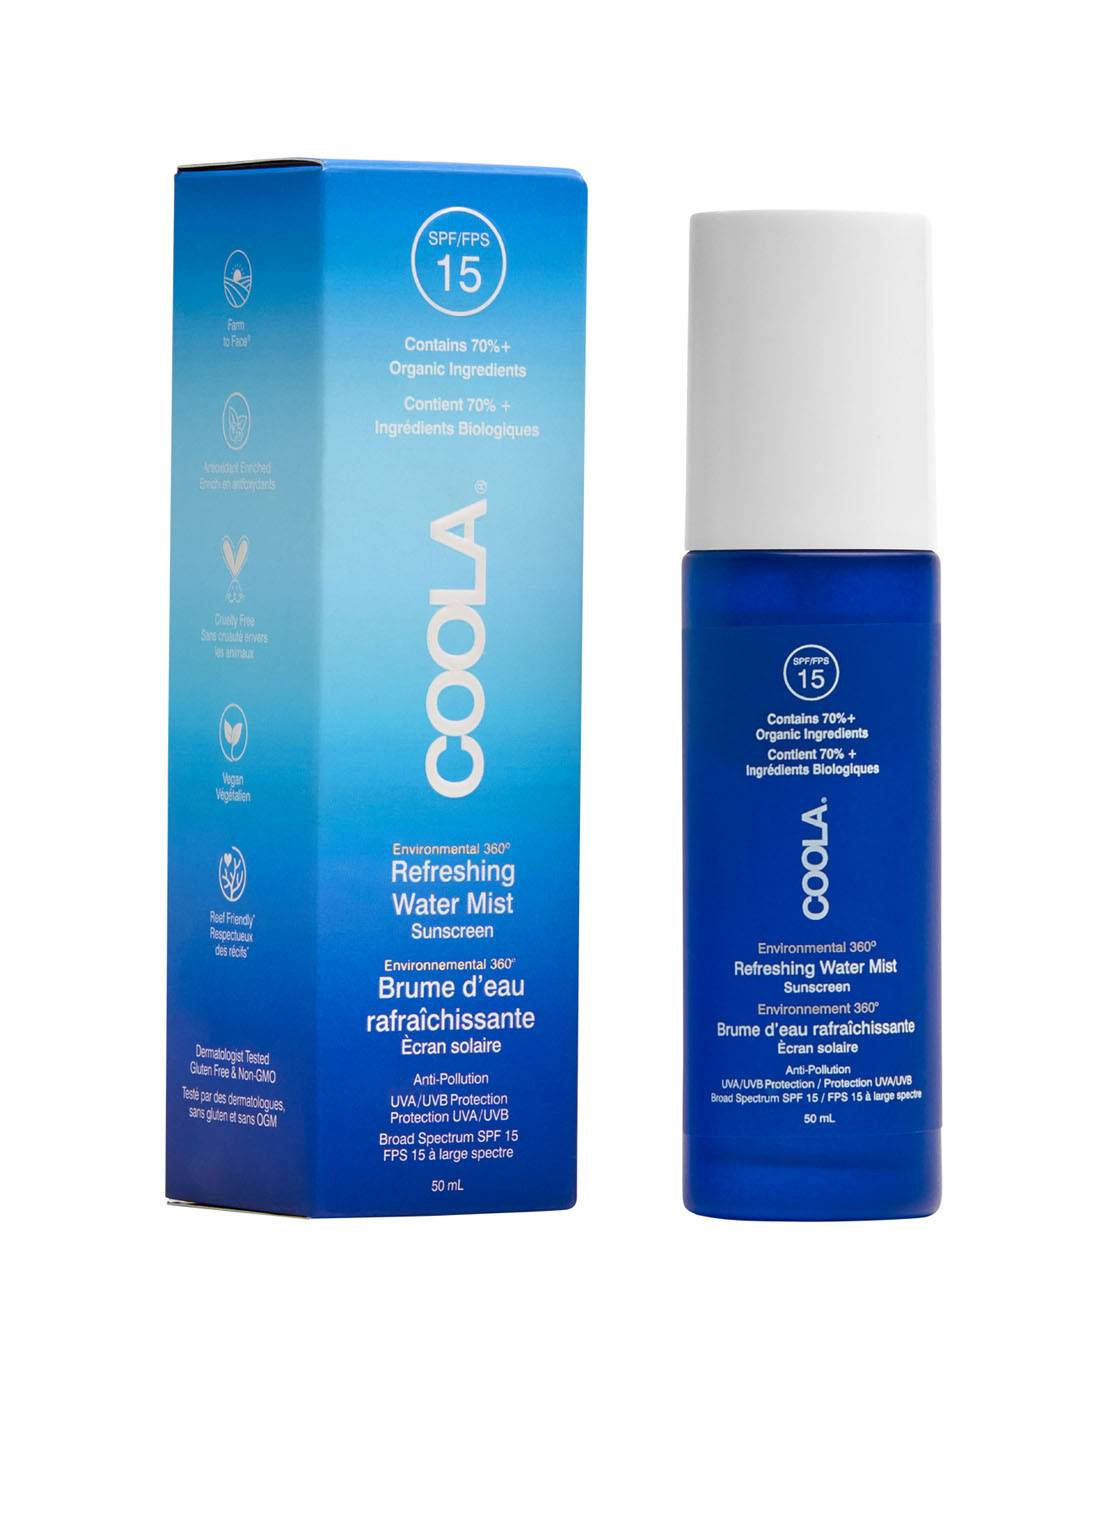 COOLA Full Spectrum 360° Refreshing Water Mist Organic Face Sunscreen SPF15 - crème solaire -